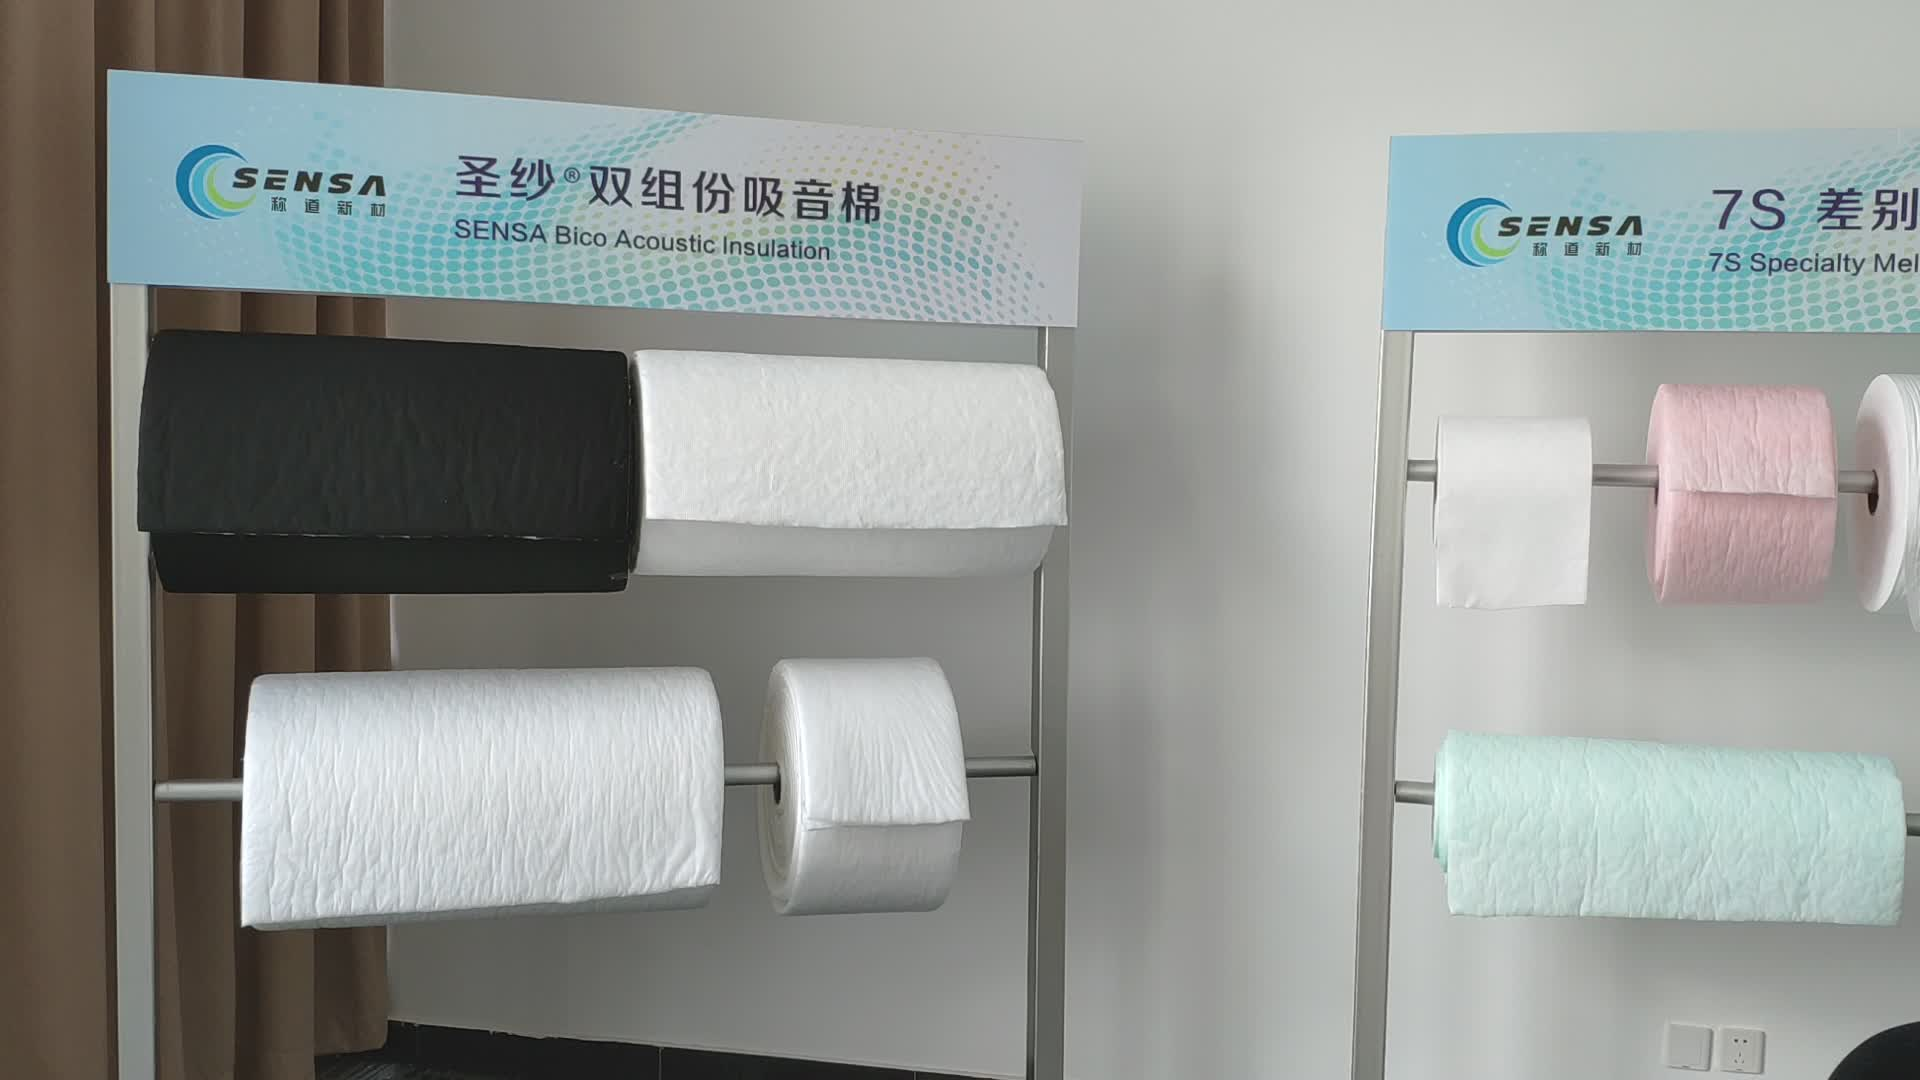 nonwoven similar with 3M thinsulate bicomponent acoustic insulation material